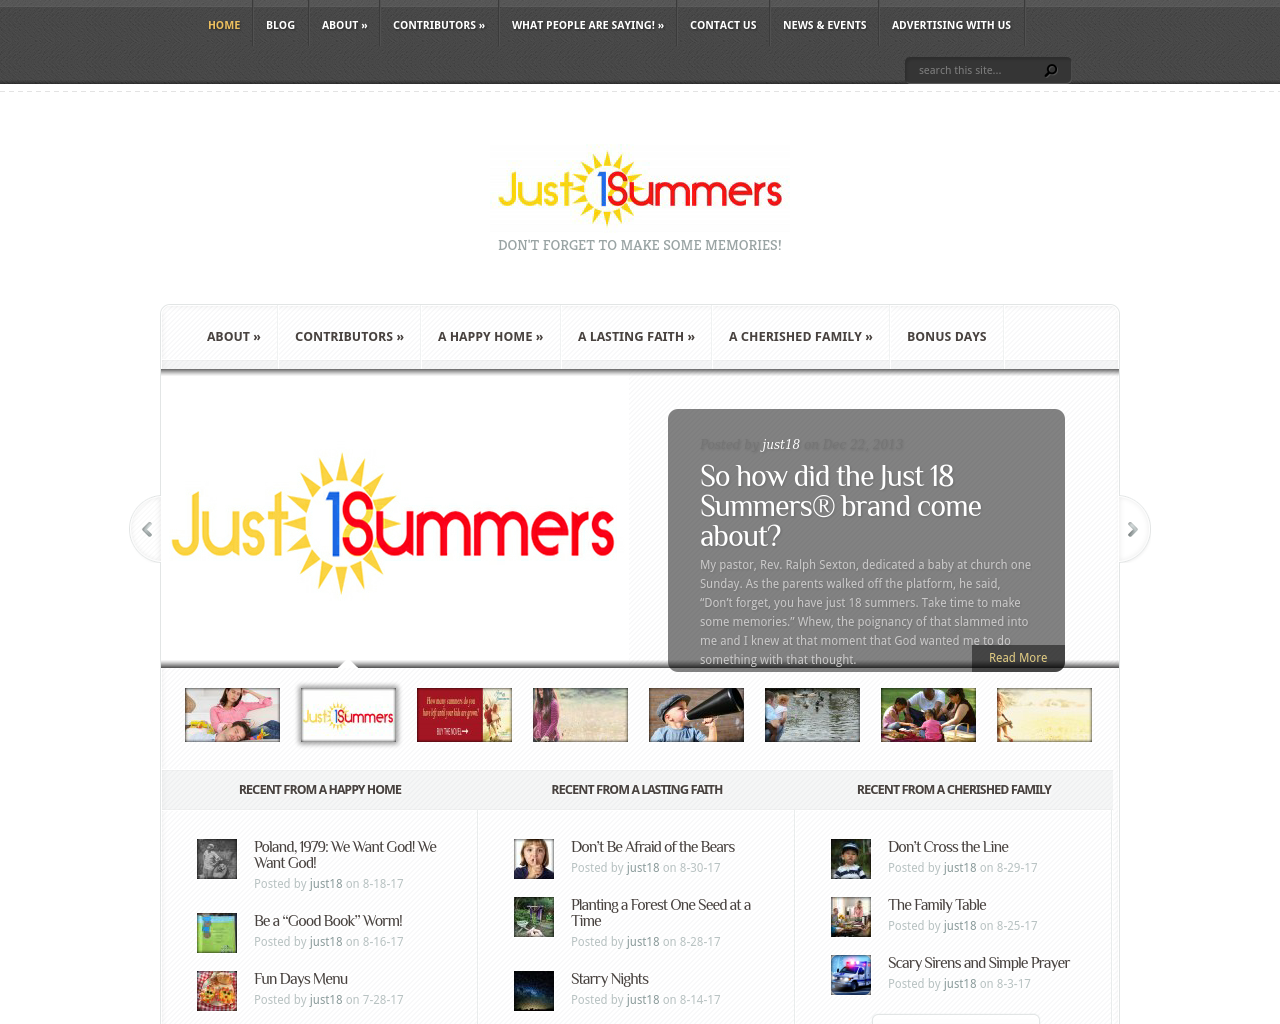 Just-18-Summers-Advertising-Reviews-Pricing